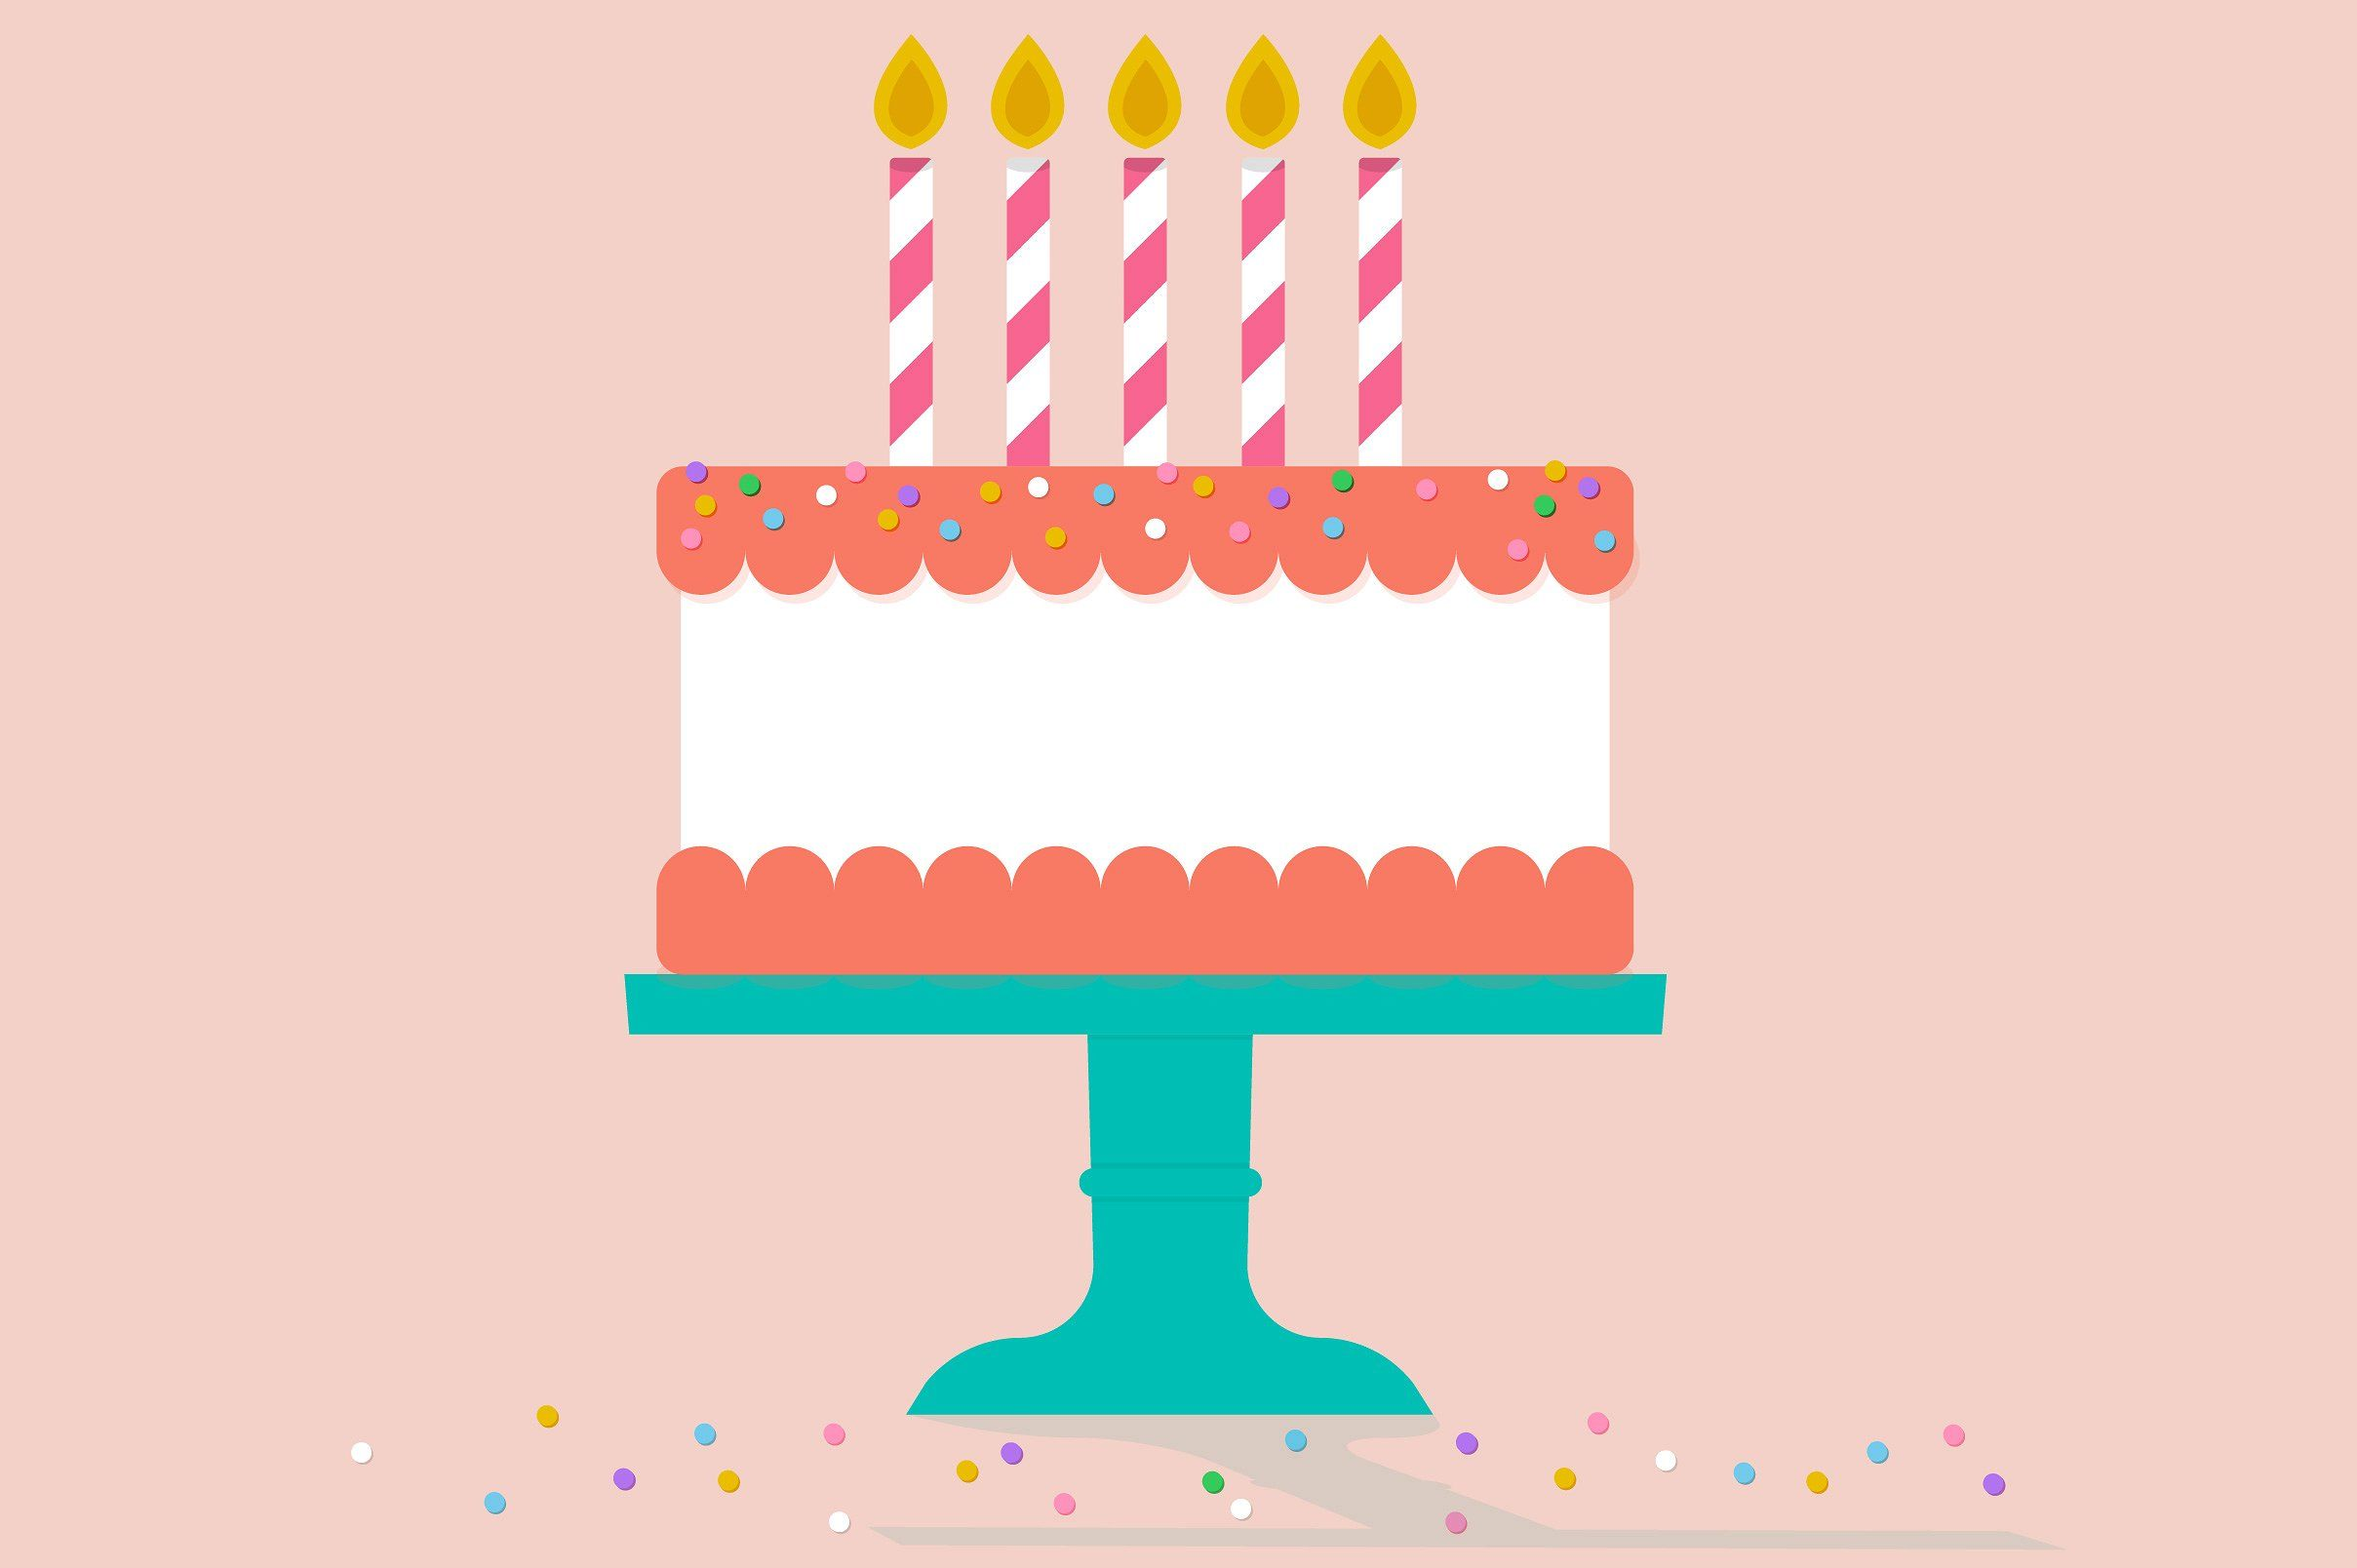 Superb Vector Birthday Cake With Images Cake Illustration Birthday Funny Birthday Cards Online Elaedamsfinfo